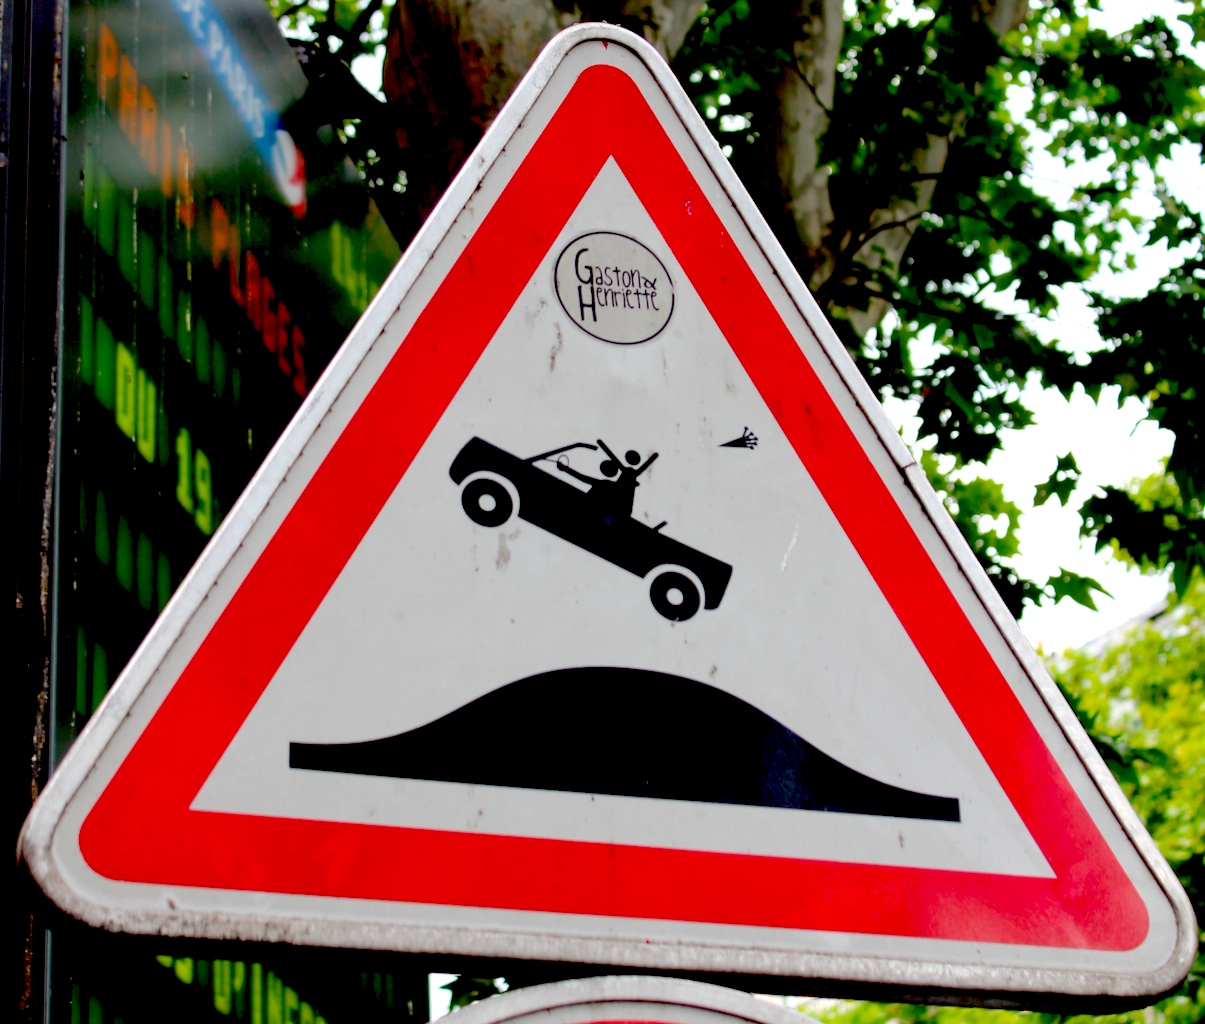 street art: speed bump